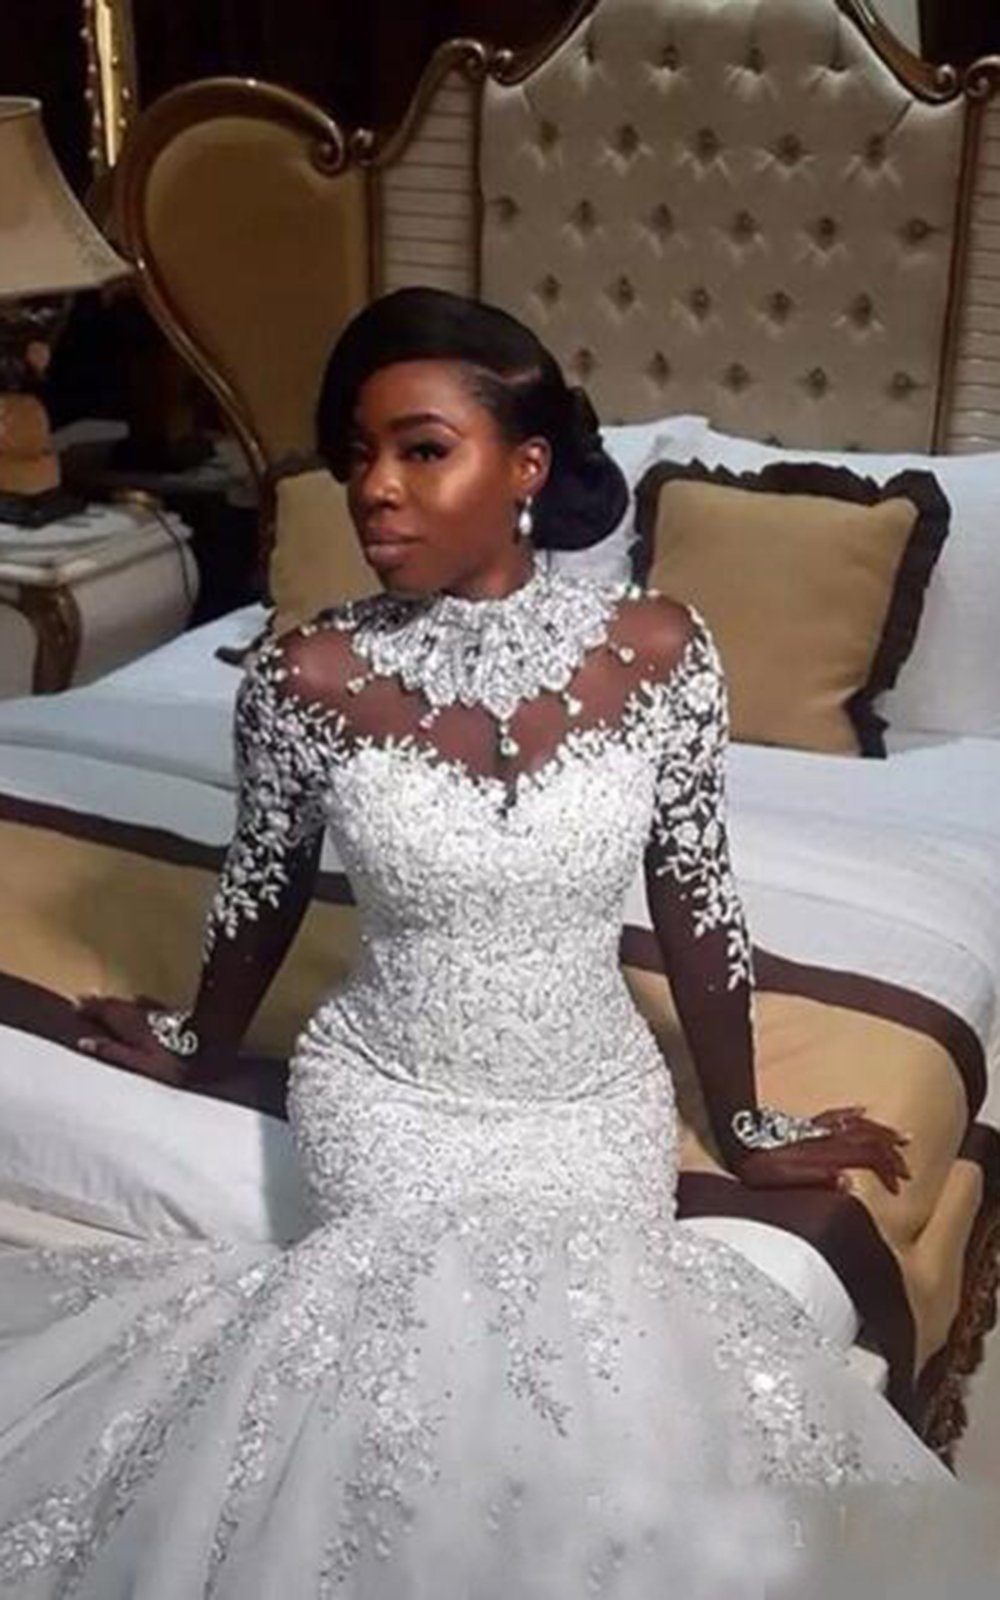 Mermaid Wedding Dress Long Sleeve High Collar Fantasy Lace Applique Crystal Beads Wedding Dress US£º2£¨S£© White